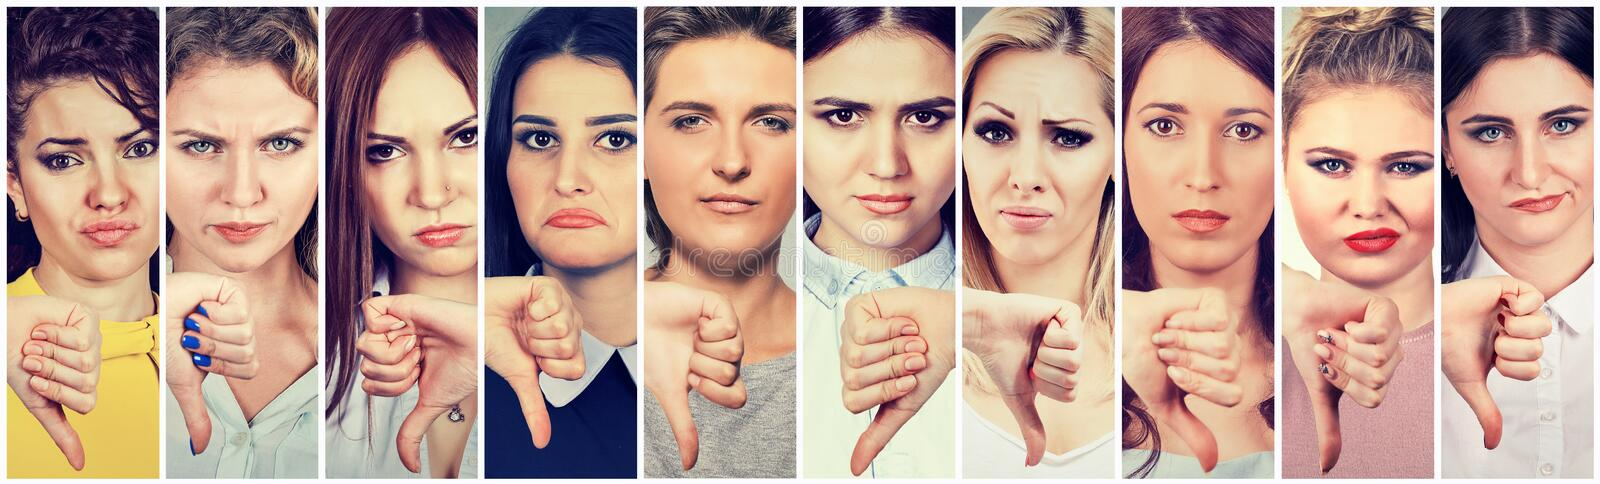 Download Group Of Multicultural Young Women Making Thumbs Down Gesture For Disagreement Stock Image - Image of ethnic, feelings: 102744187